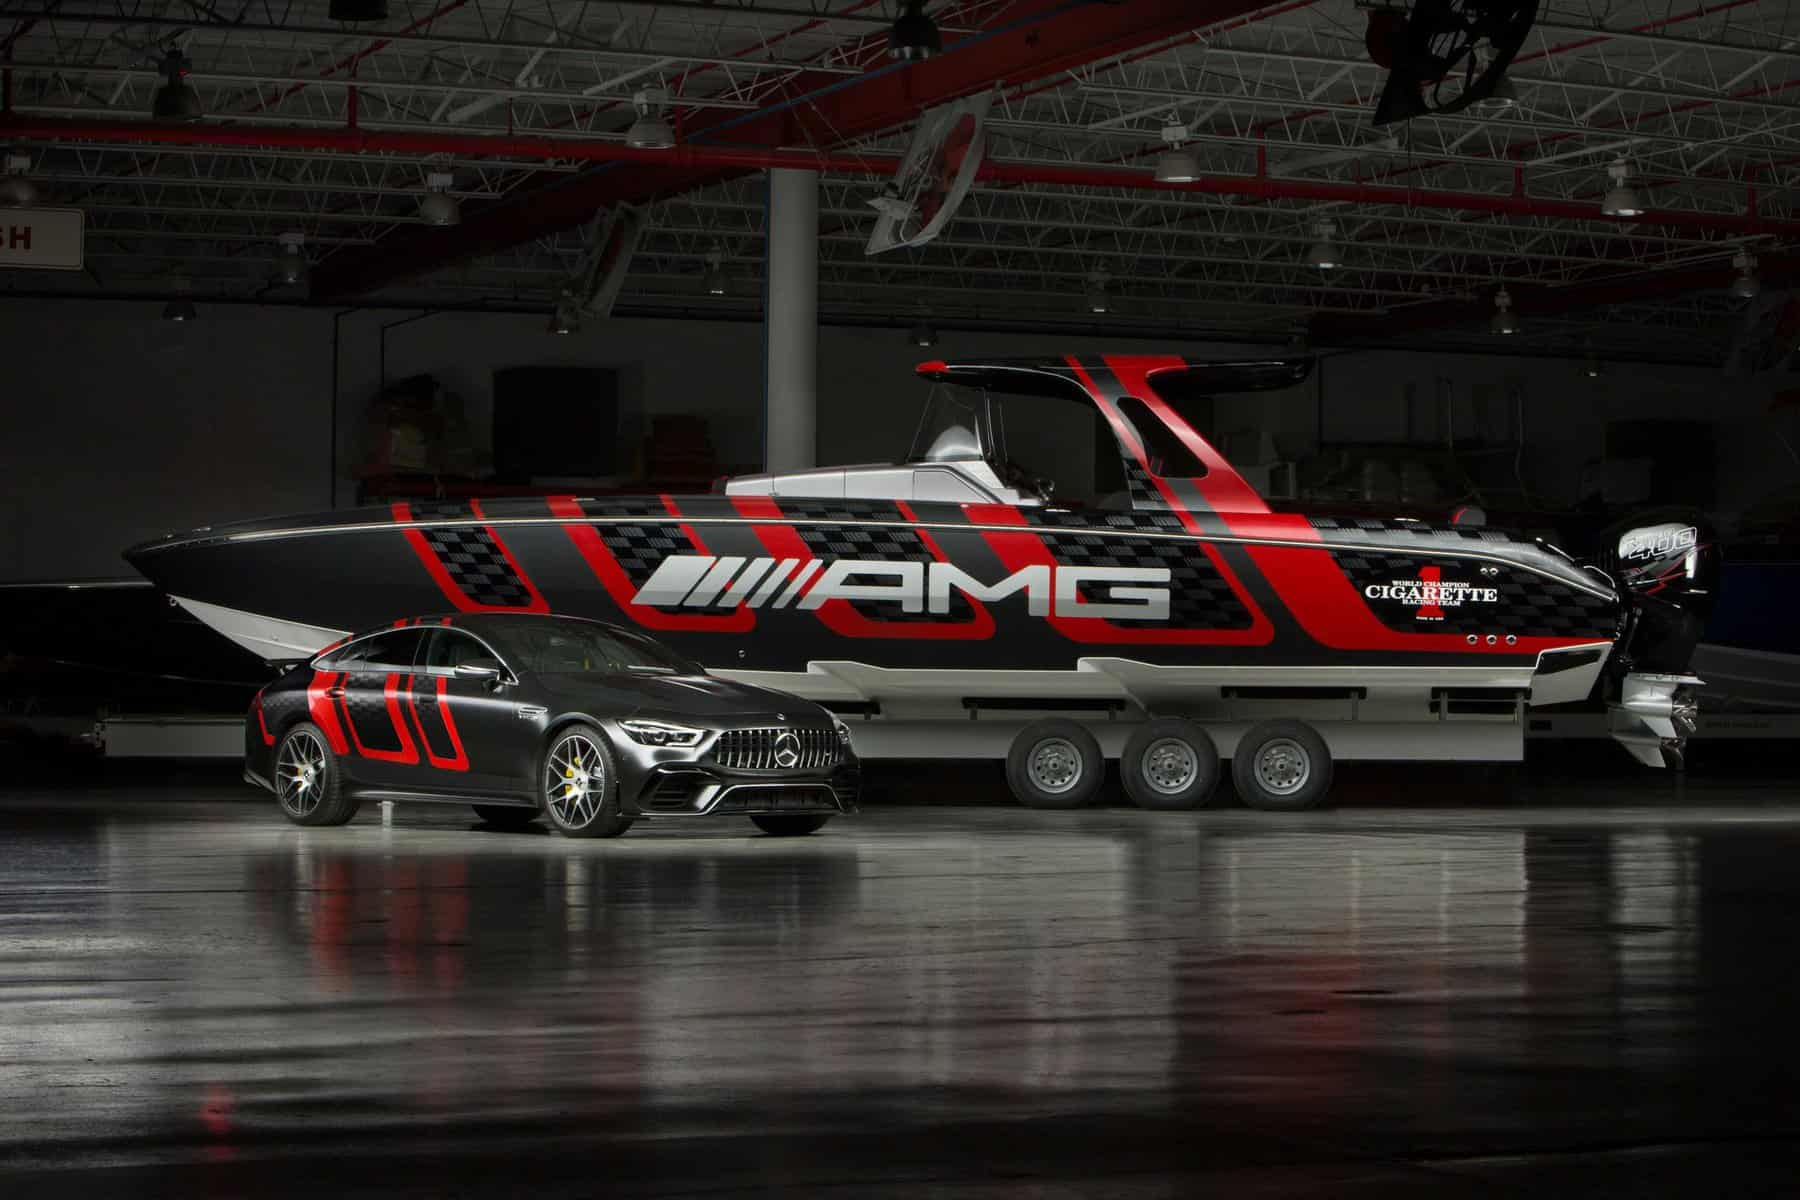 amg-carbon-edition-speedboat-from-mercedes-amg-and-cigarette-racing-11